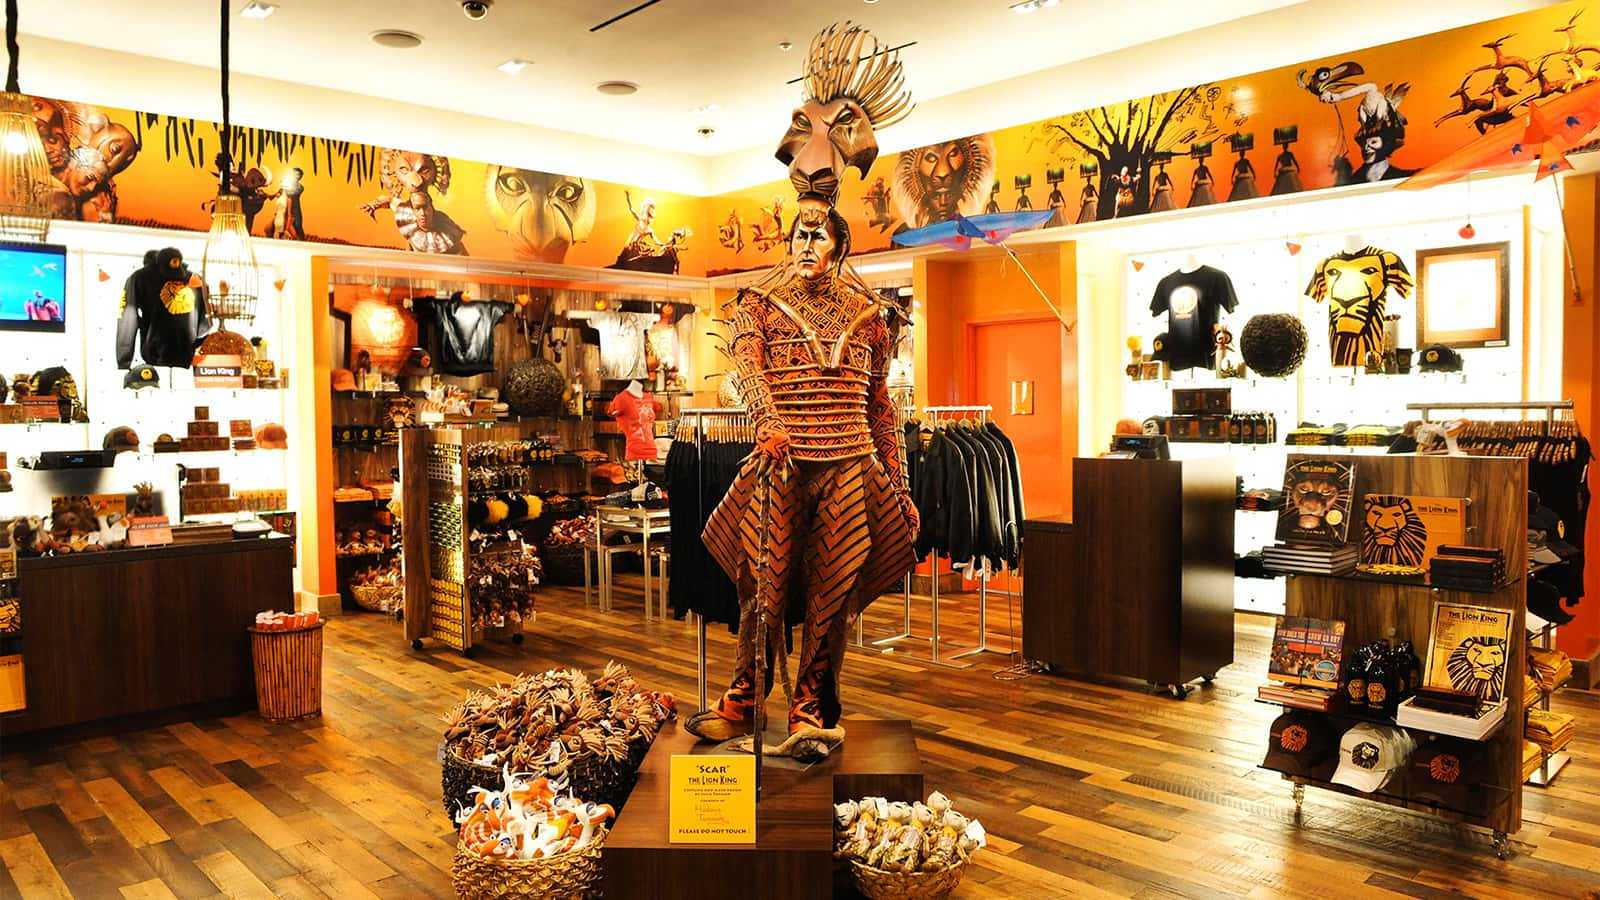 Costume display in the center of the Mandalay Bay Lion King Theater Store.